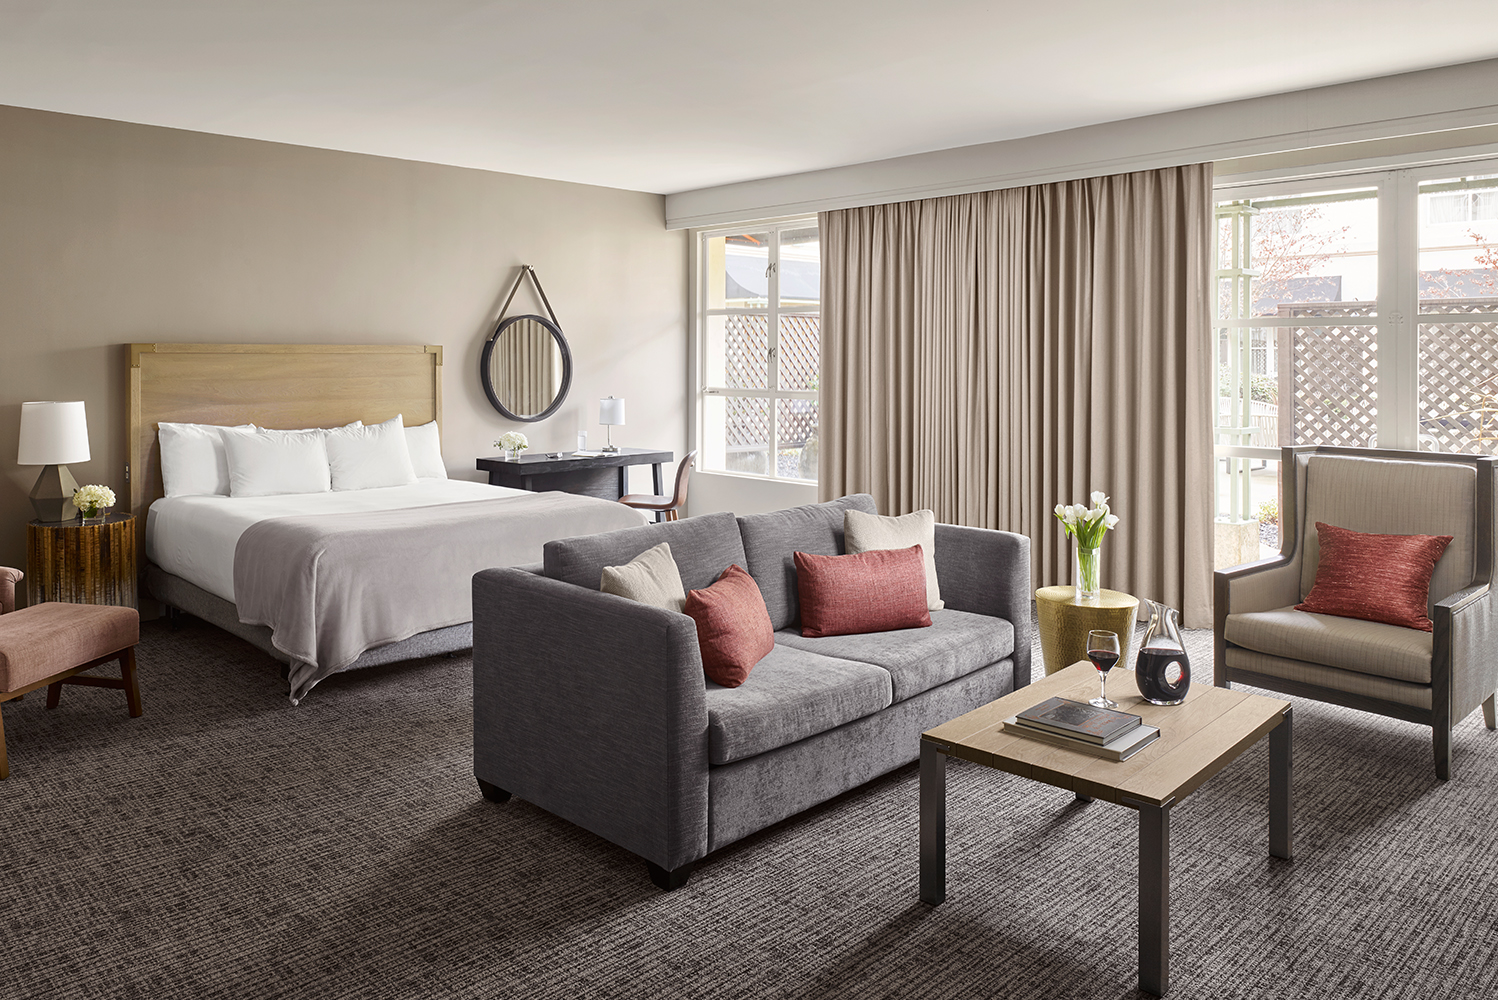 Hyatt Regency Sonoma Wine Country completed its redesign to add 90 guestrooms.